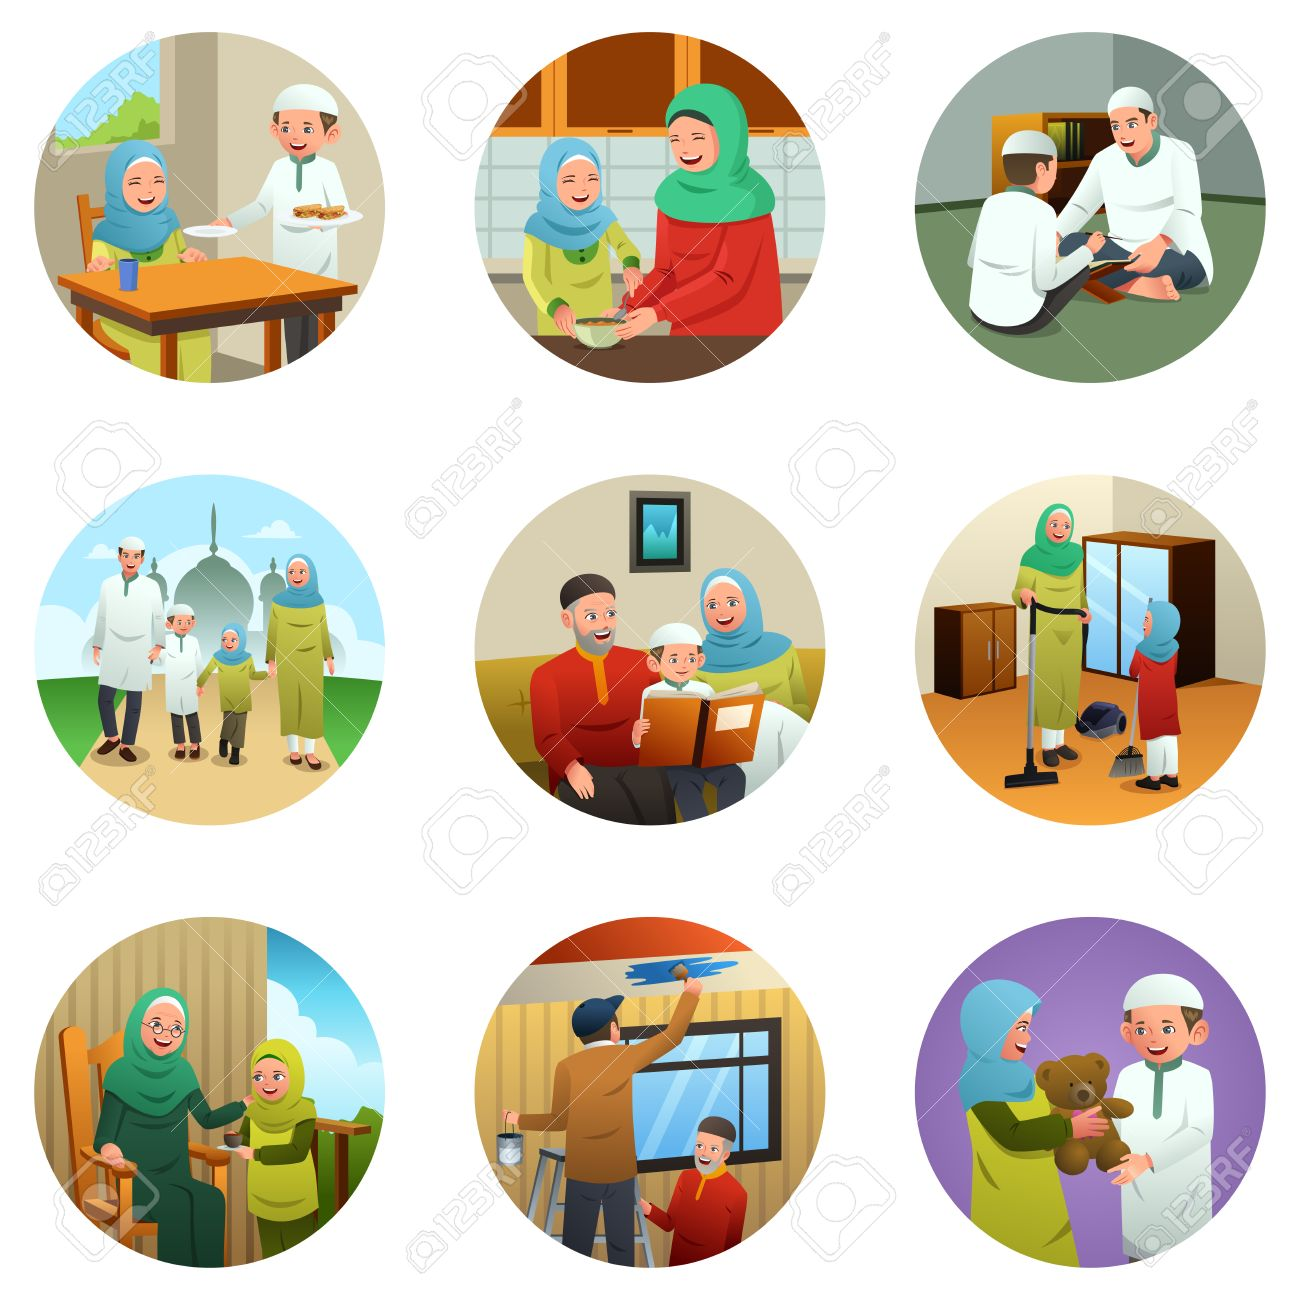 A Vector Illustration Of Muslim Family Doing Different Activities